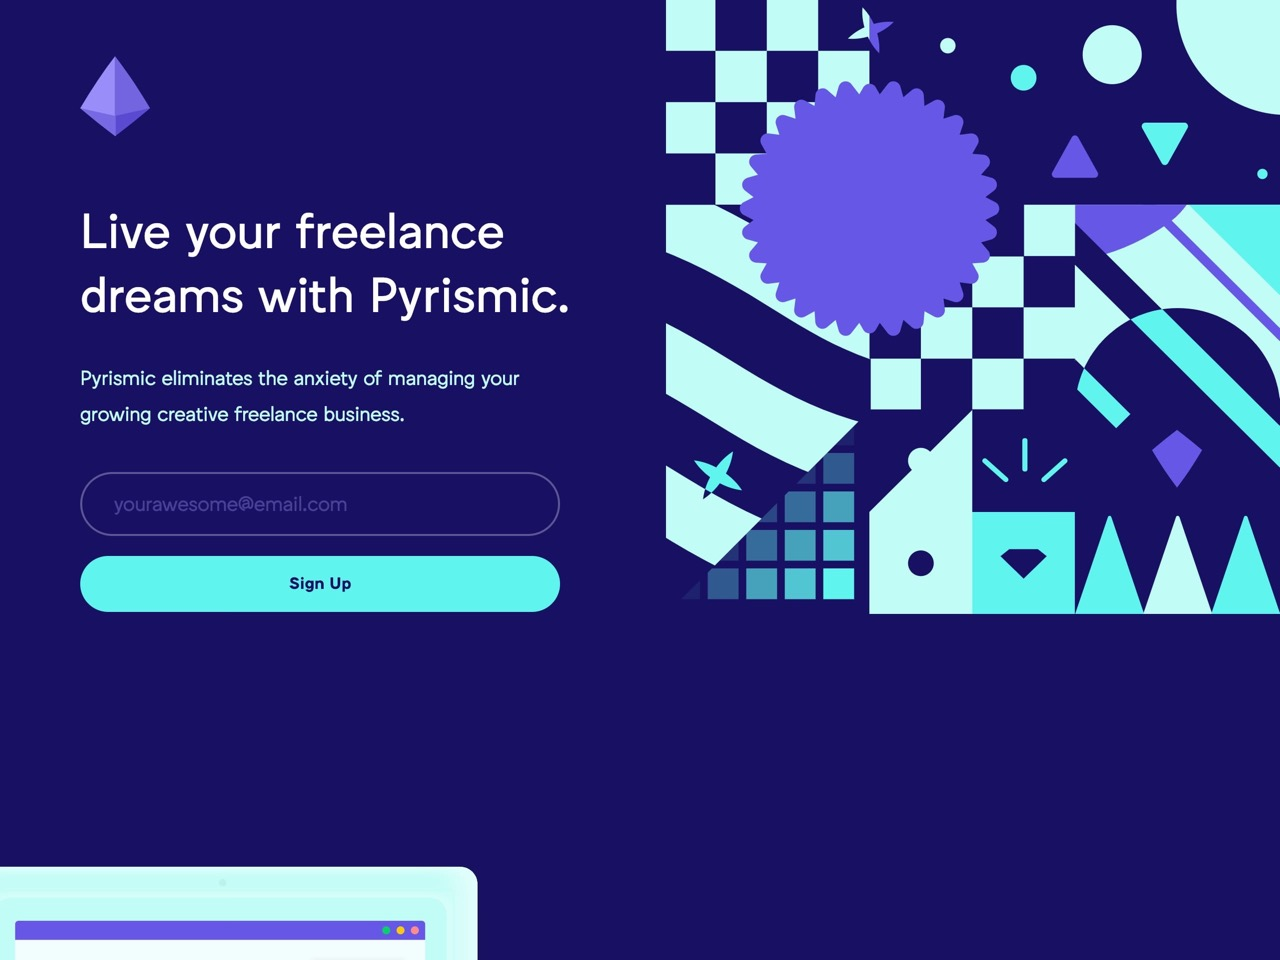 Pyrismic   live your freelance dreams